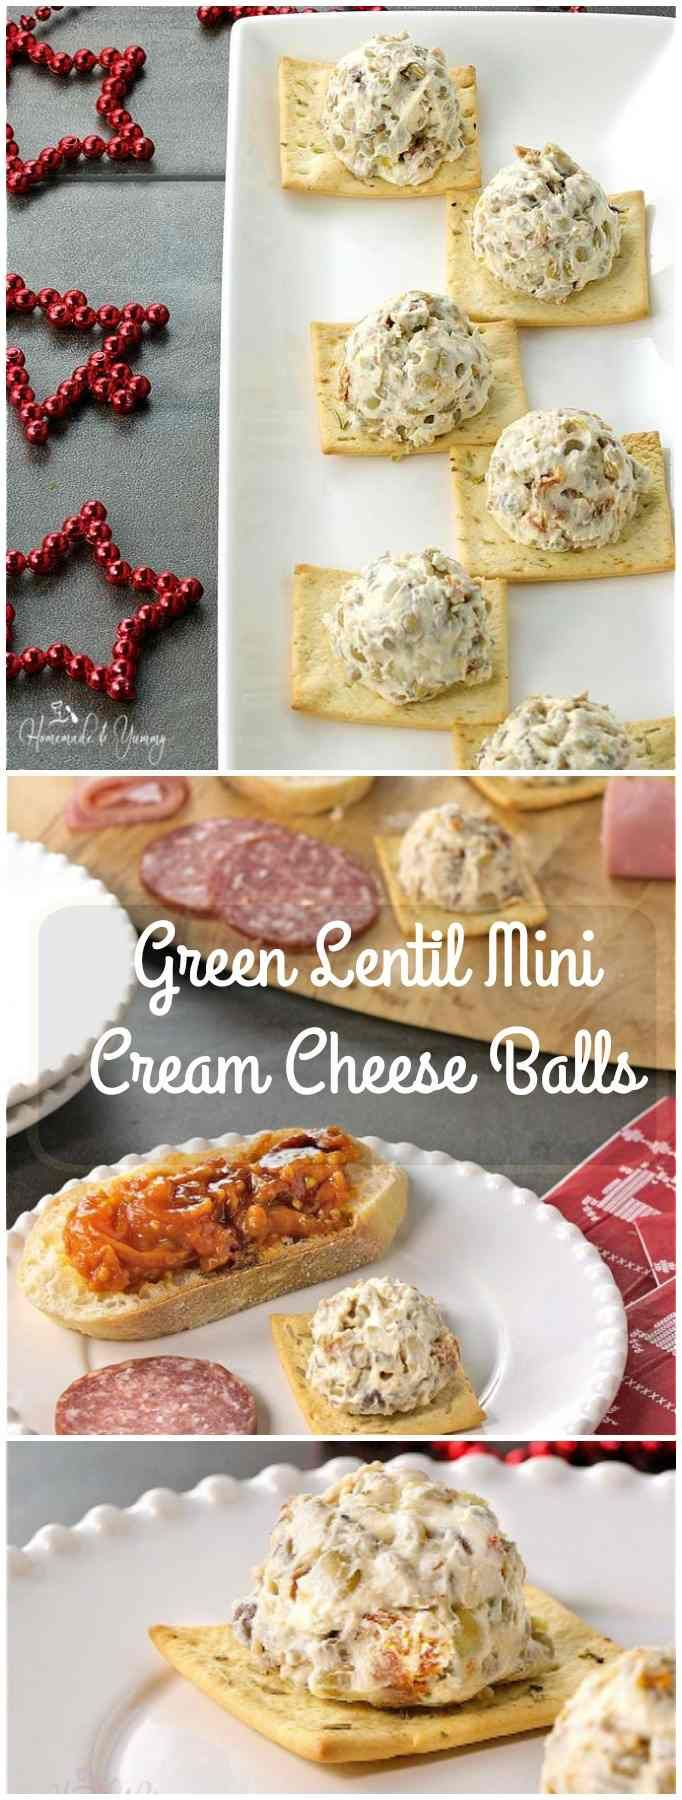 Green Lentil Mini Cream Cheese Balls are easy to make and party perfect. Add some interesting texture, taste and nutrition to your holiday appetizers. #LoveLentils #Sponsored | homemadeandyummy.com